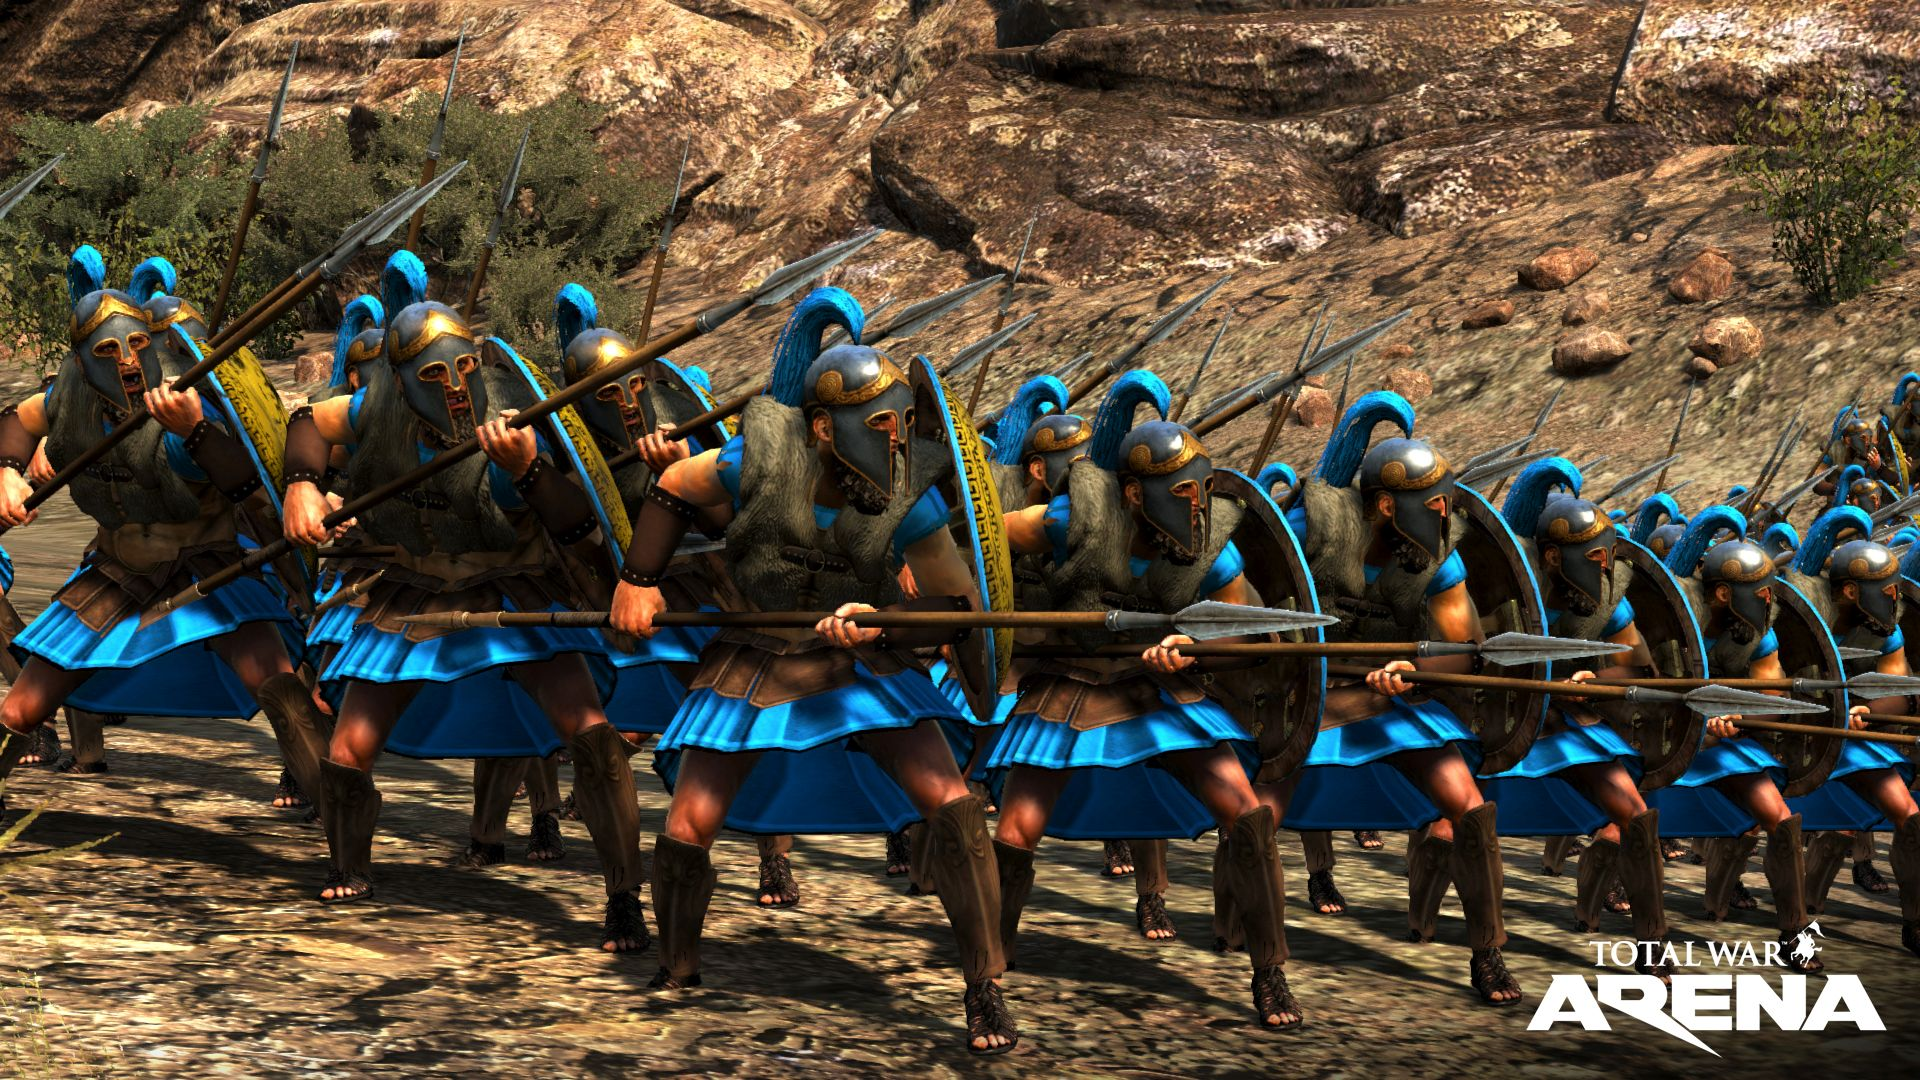 Total War Arena Screens 11